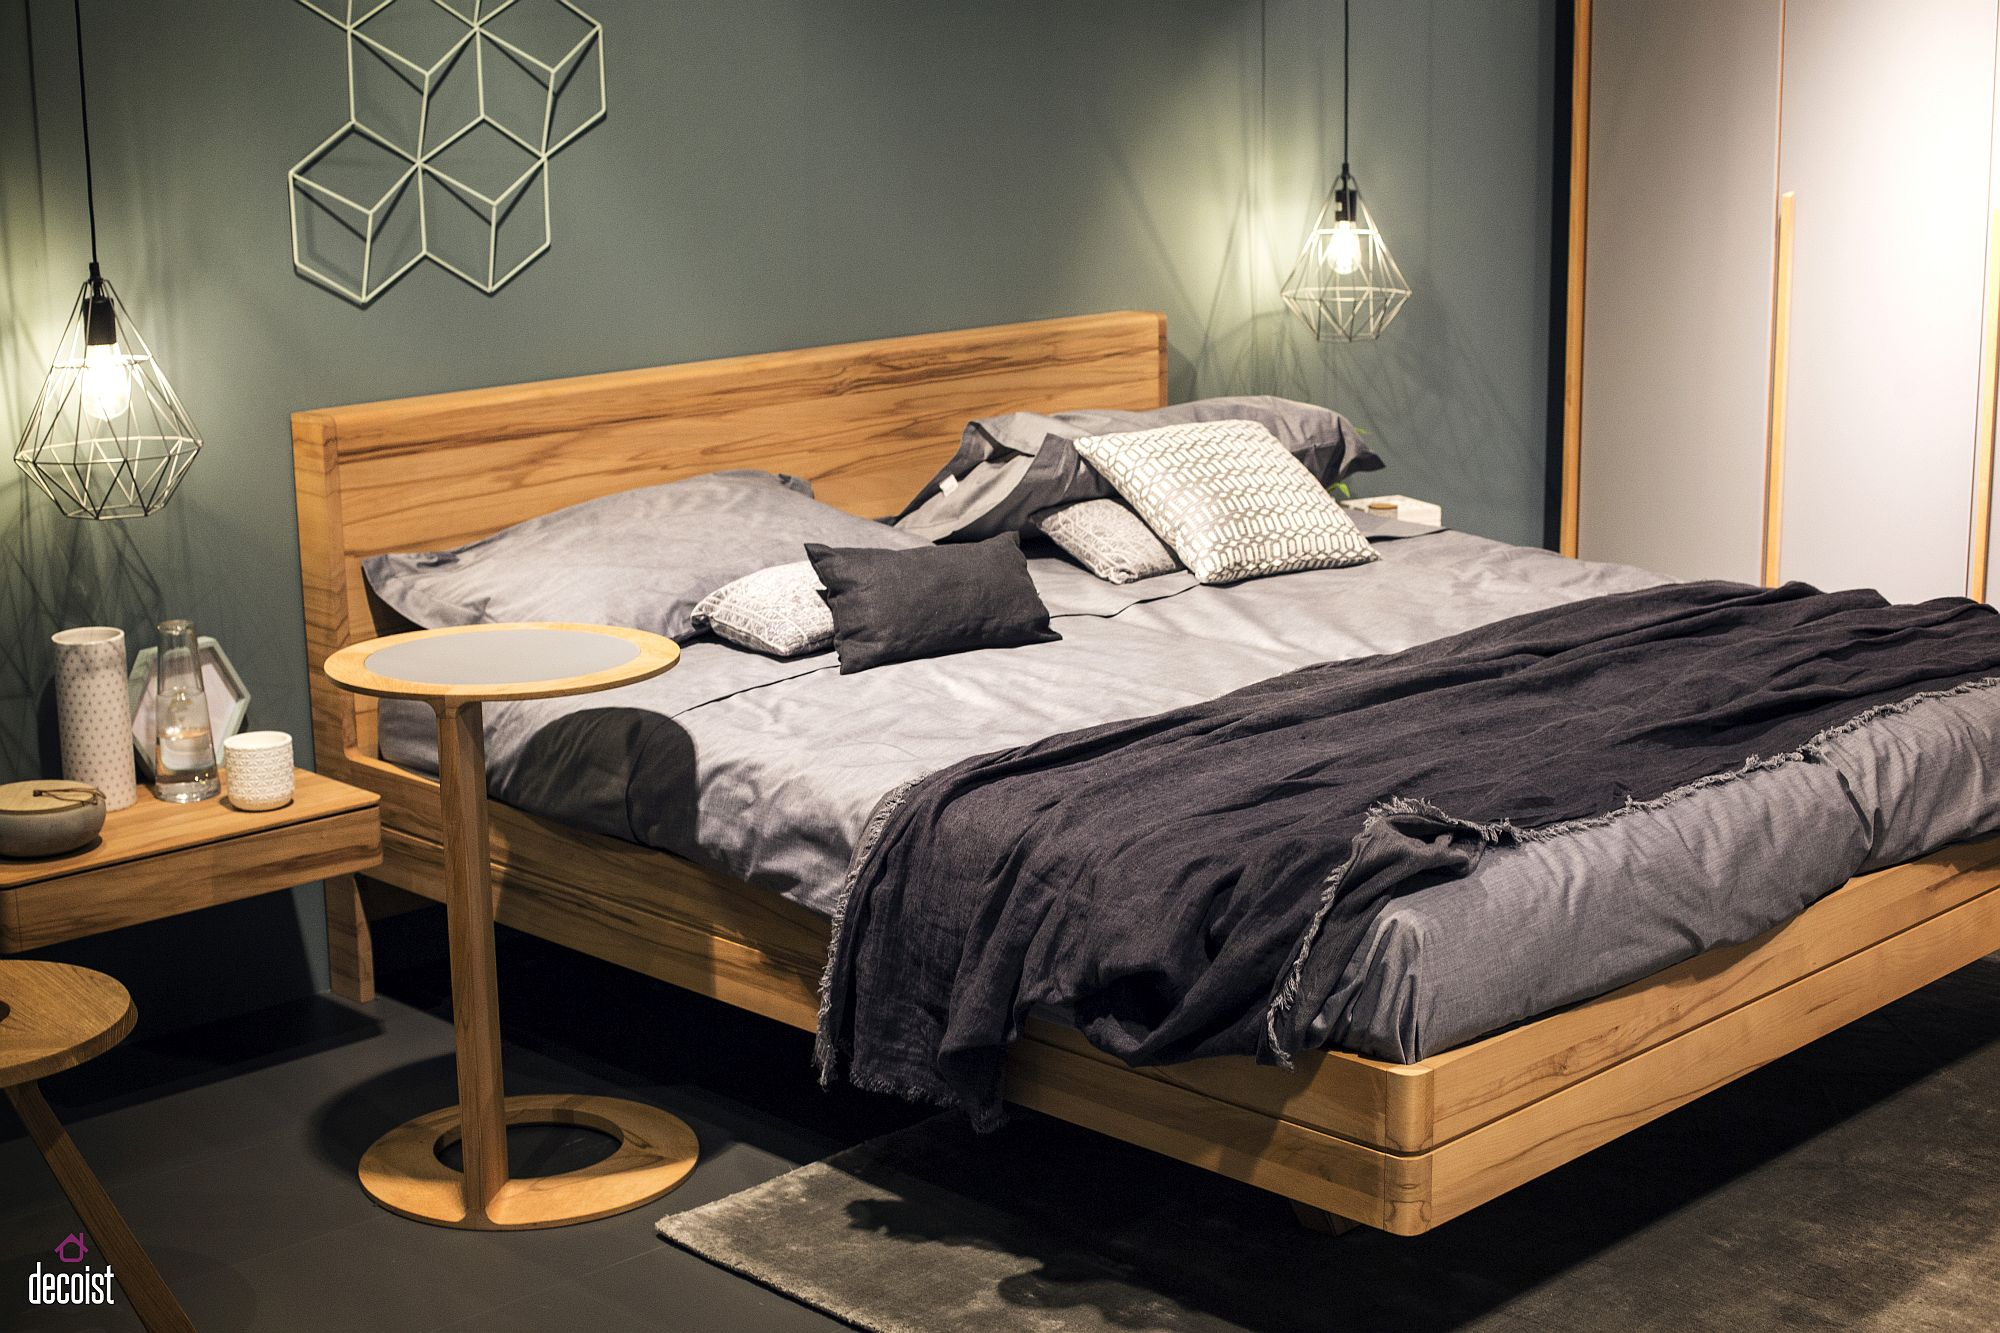 Dashing modern bedroom idea for those who love wood and geo accents